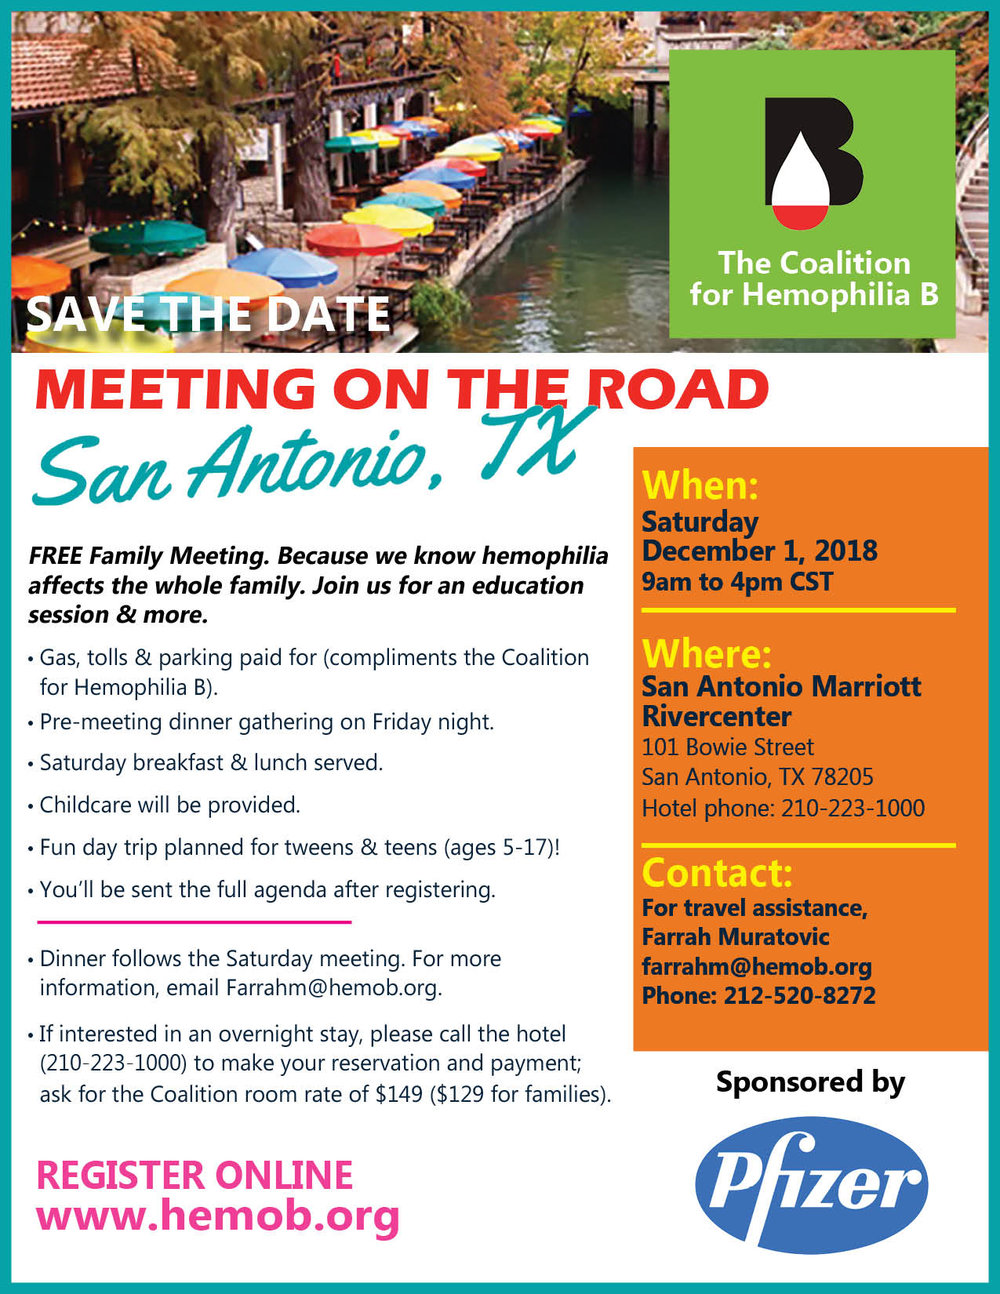 - CLICK the picture to download our official San Antonio meeting flyer.